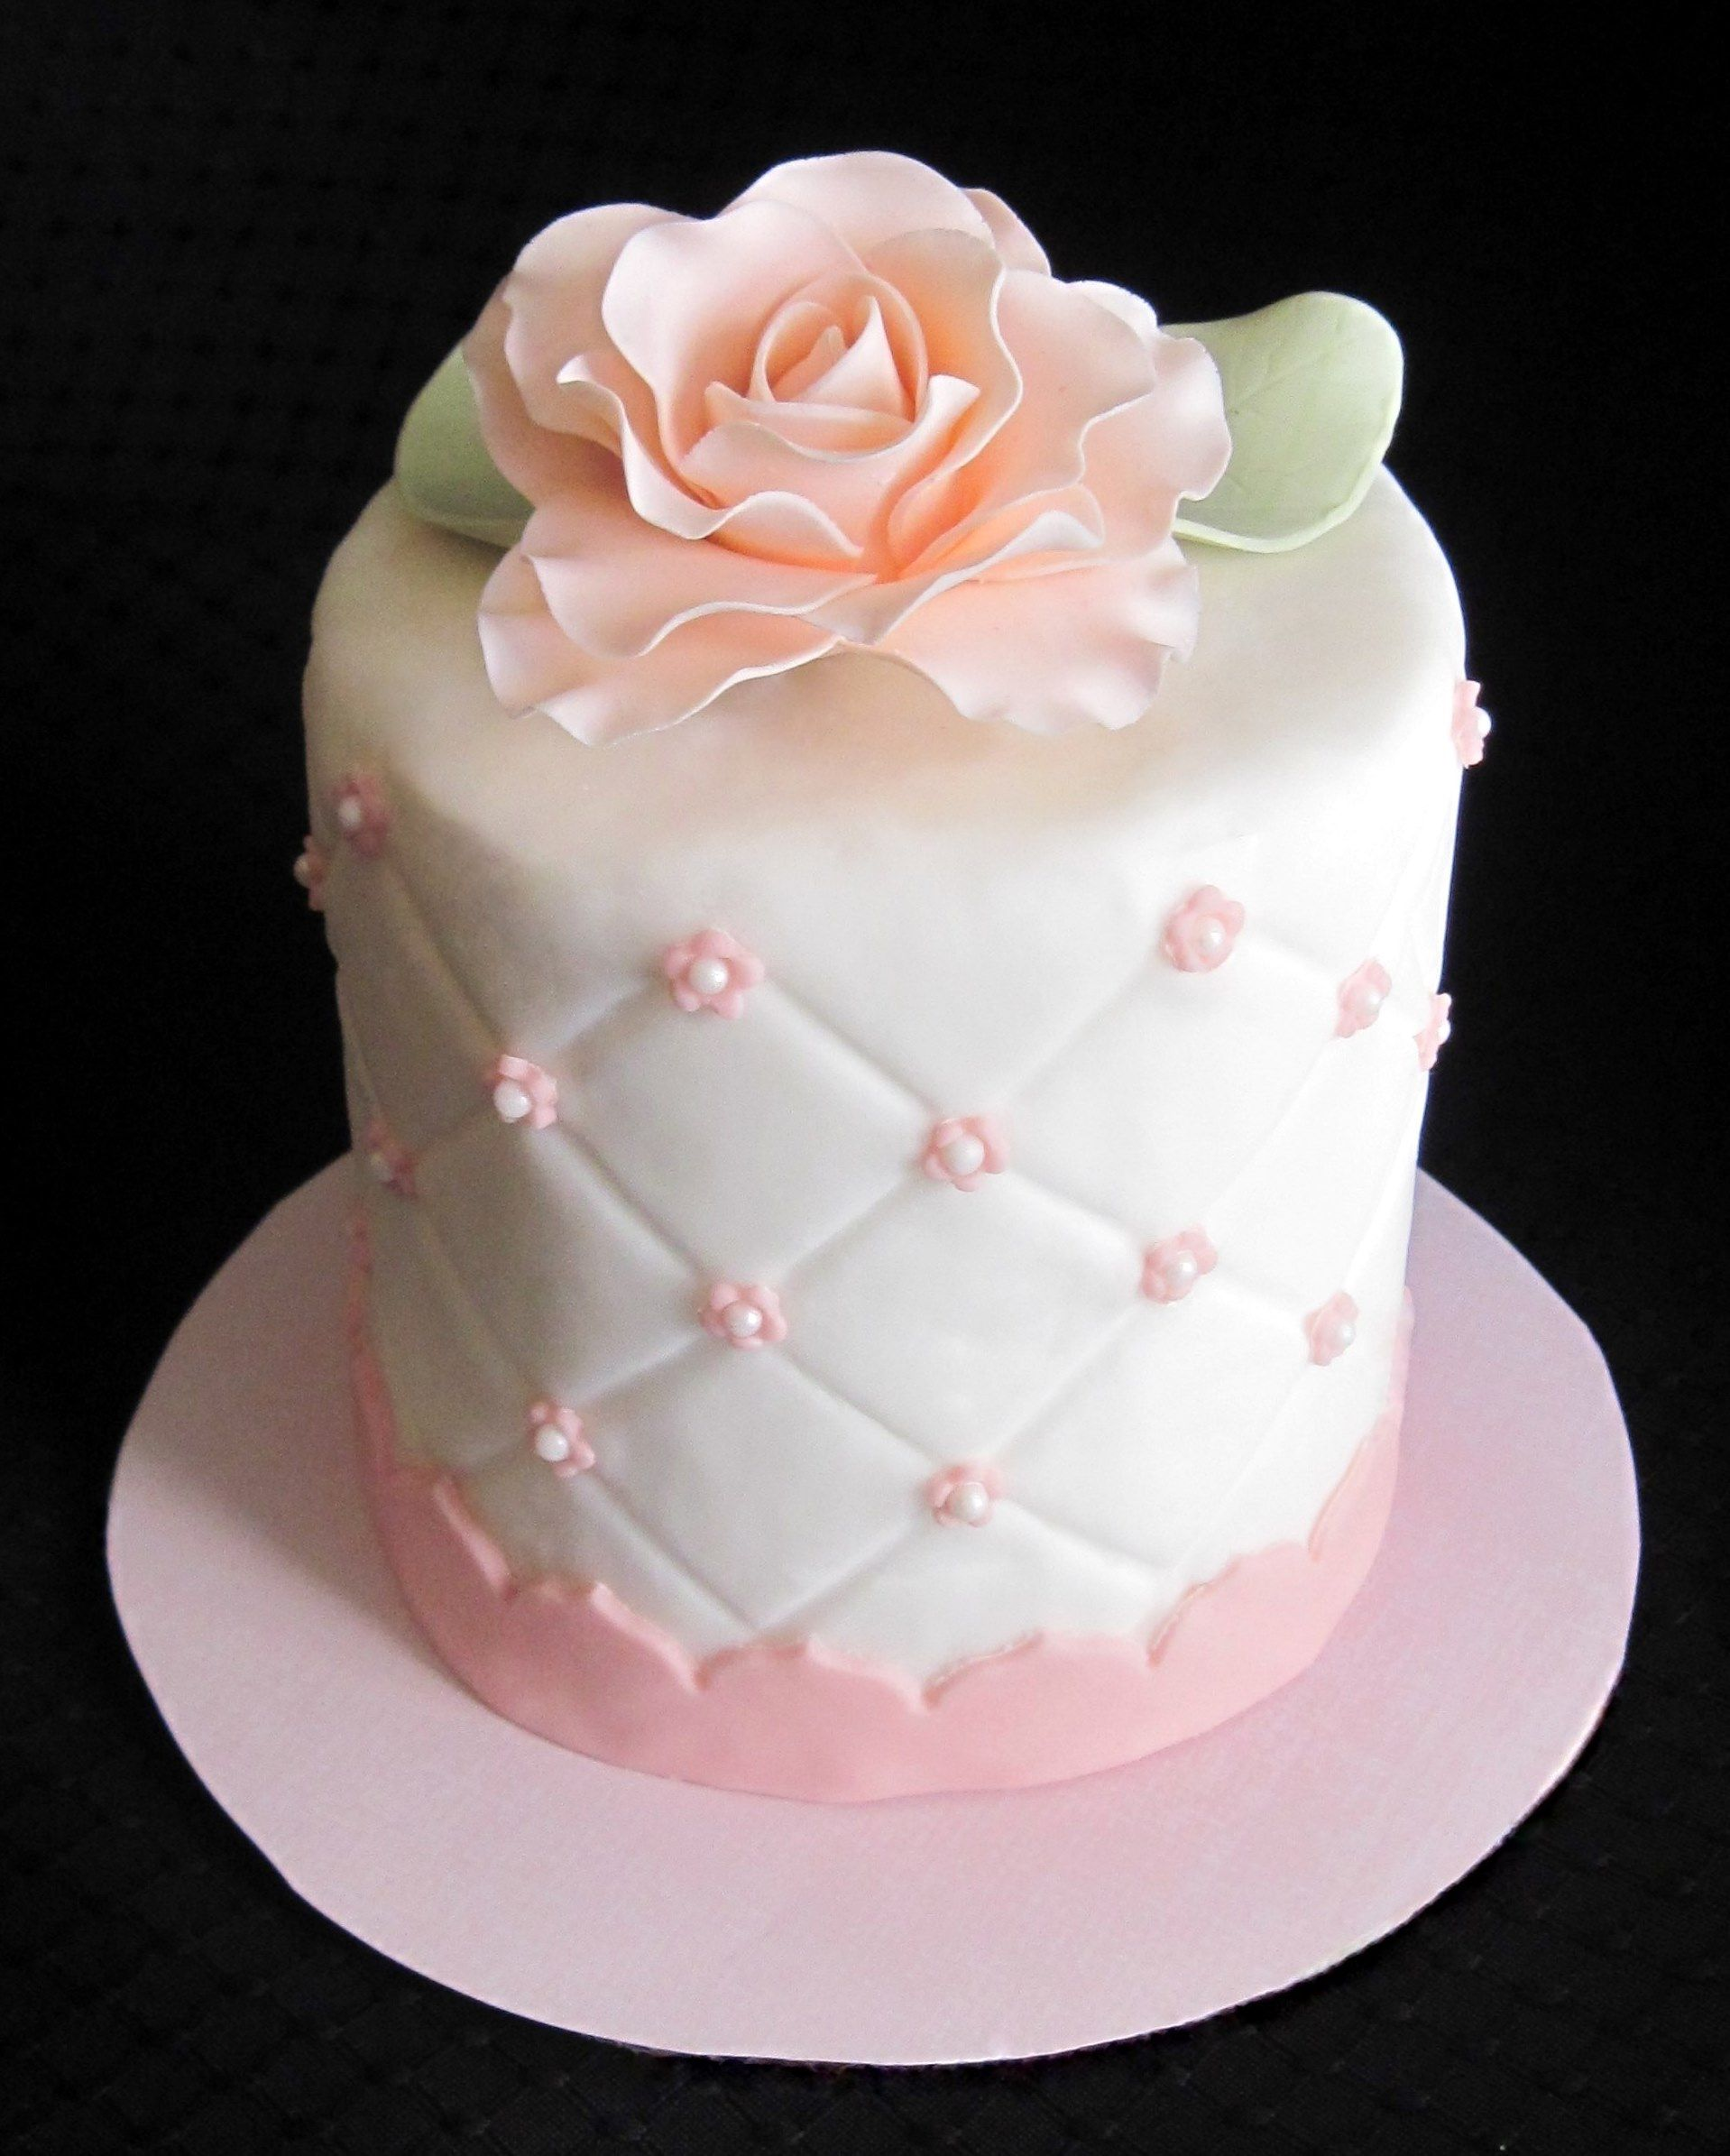 Cake Decorating With Gumpaste Flowers : simle elegant mother of the Bride cake - 4 inch individual ...